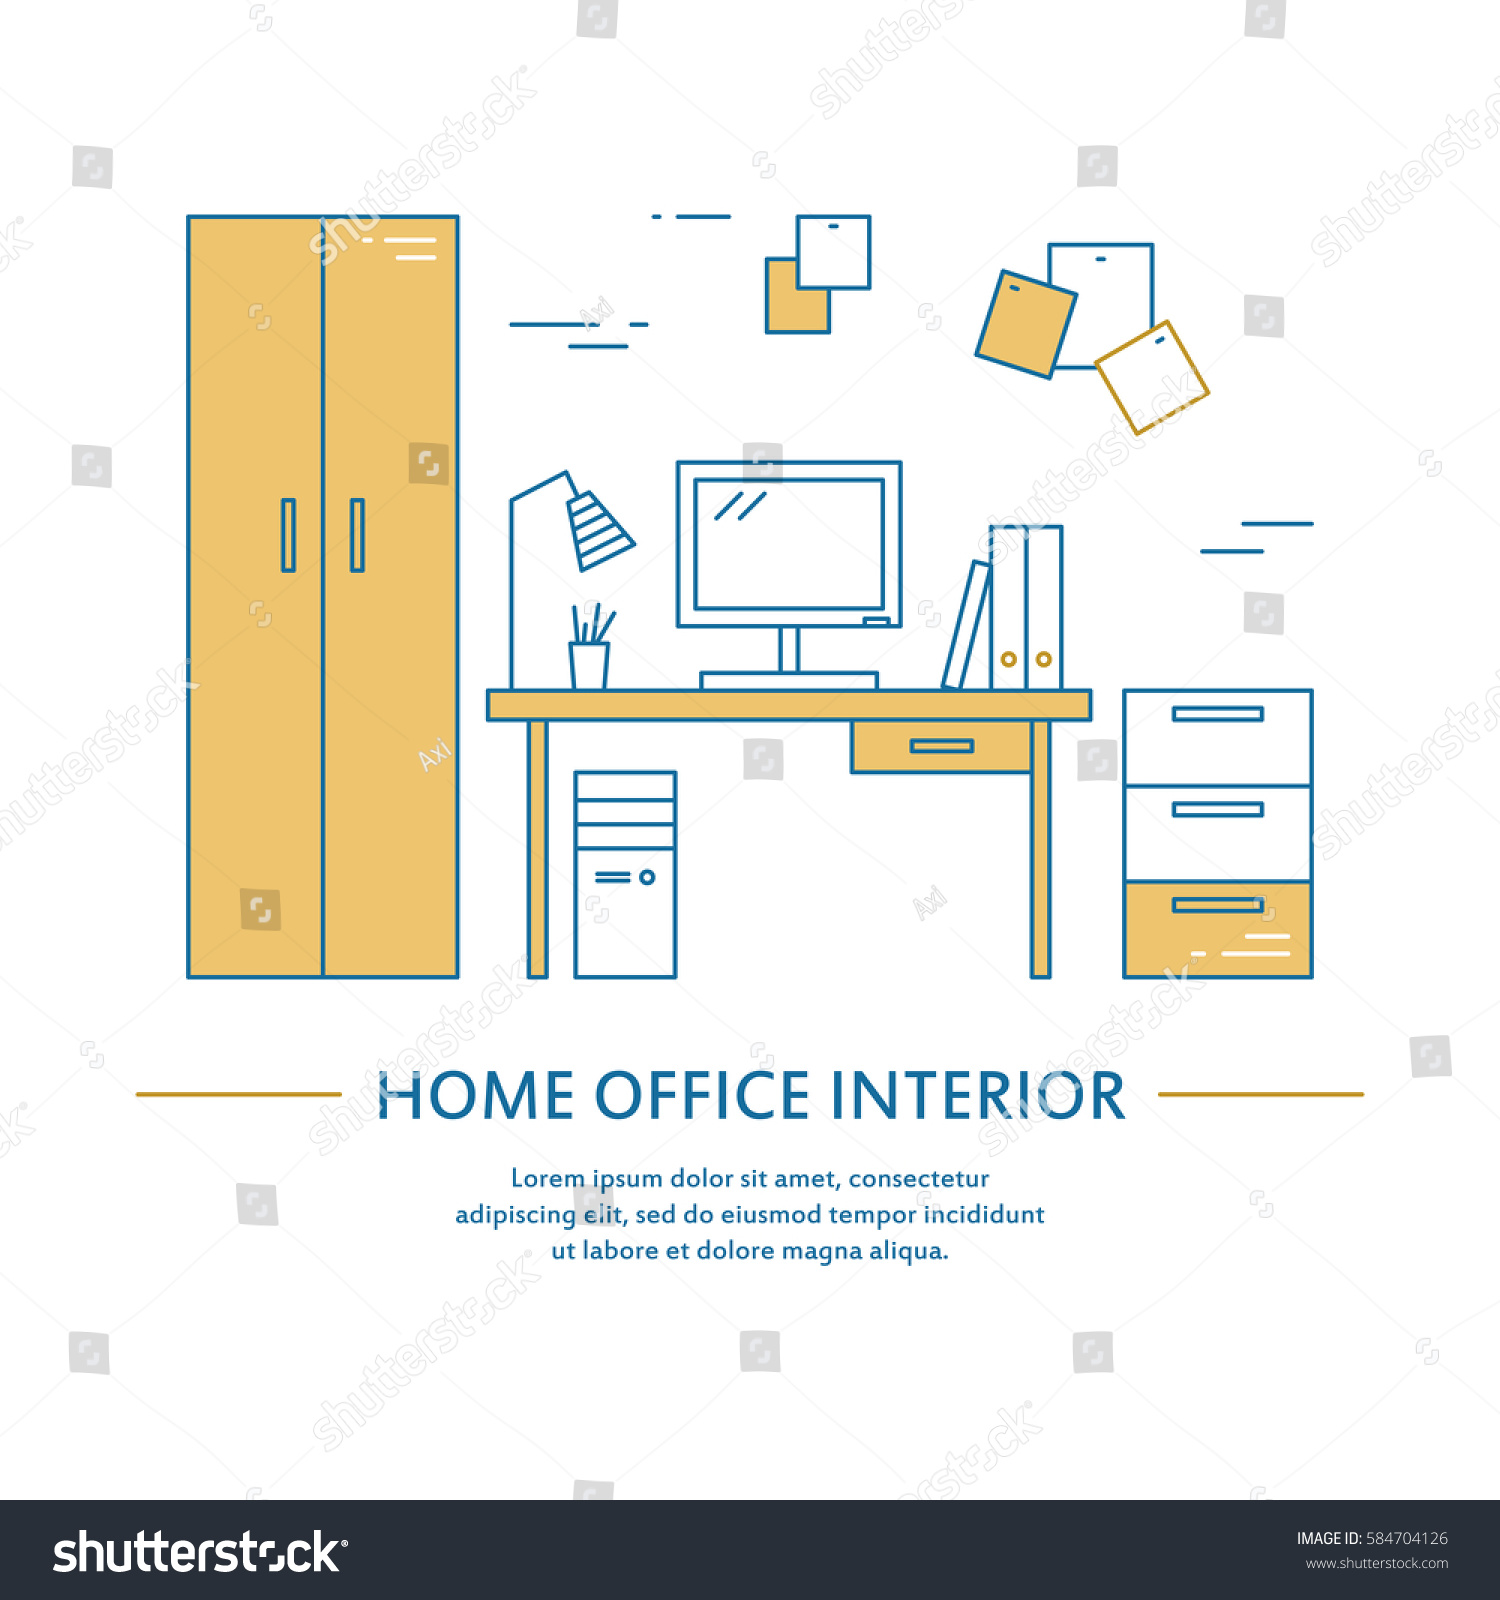 Interior Decoration Business Plan Vector Office Interior Design Brochure Cover Stock Vector